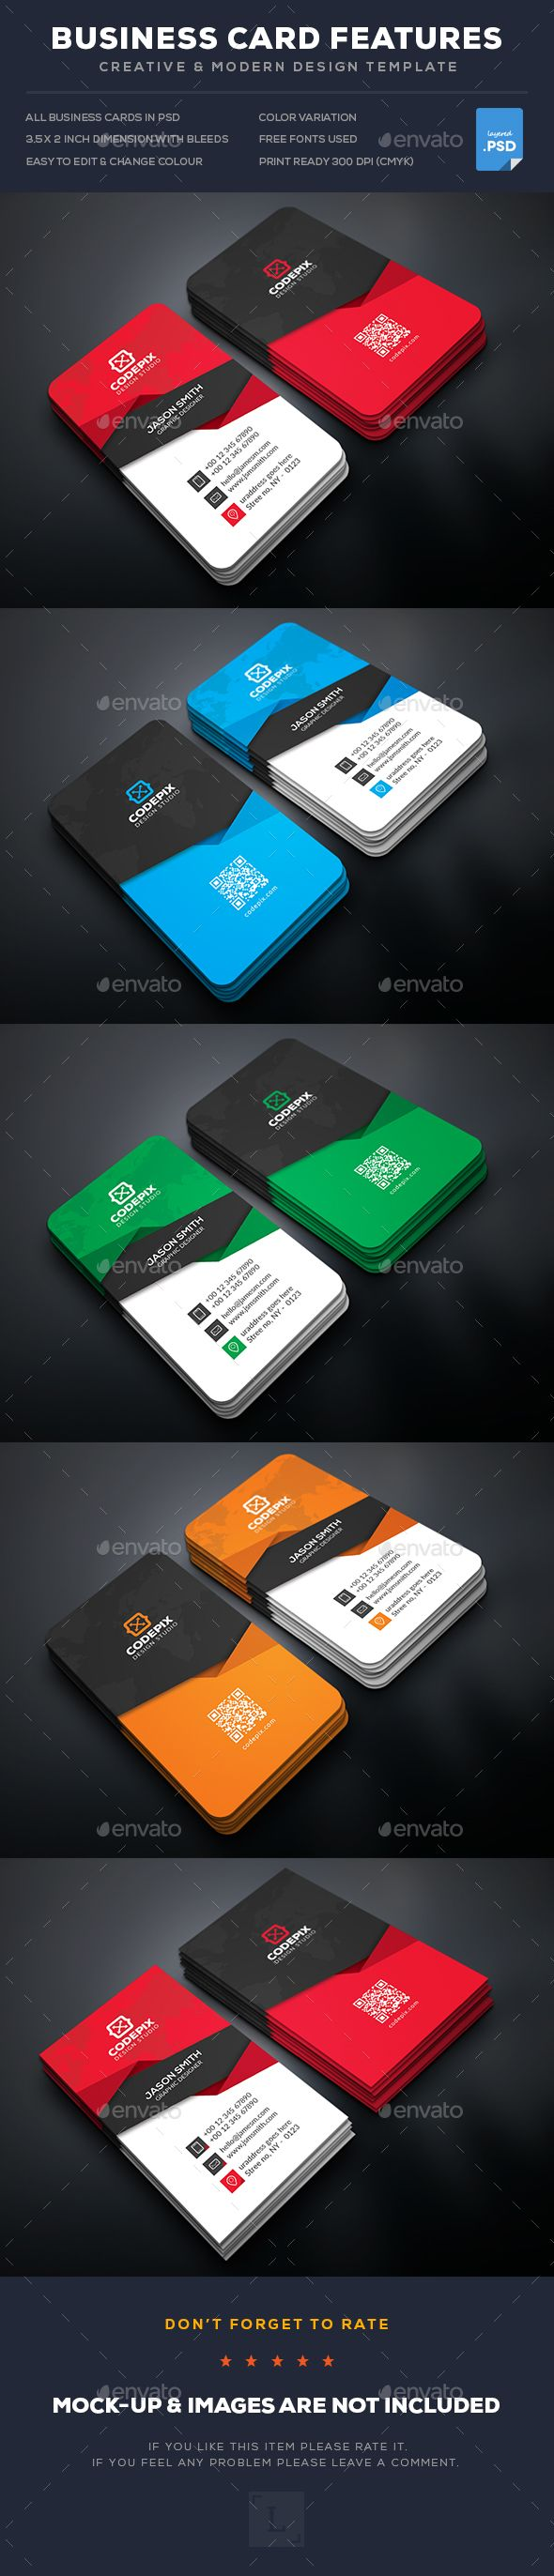 Business Card Template PSD. Download here: https://graphicriver.net/item/business-card/16967154?ref=ksioks